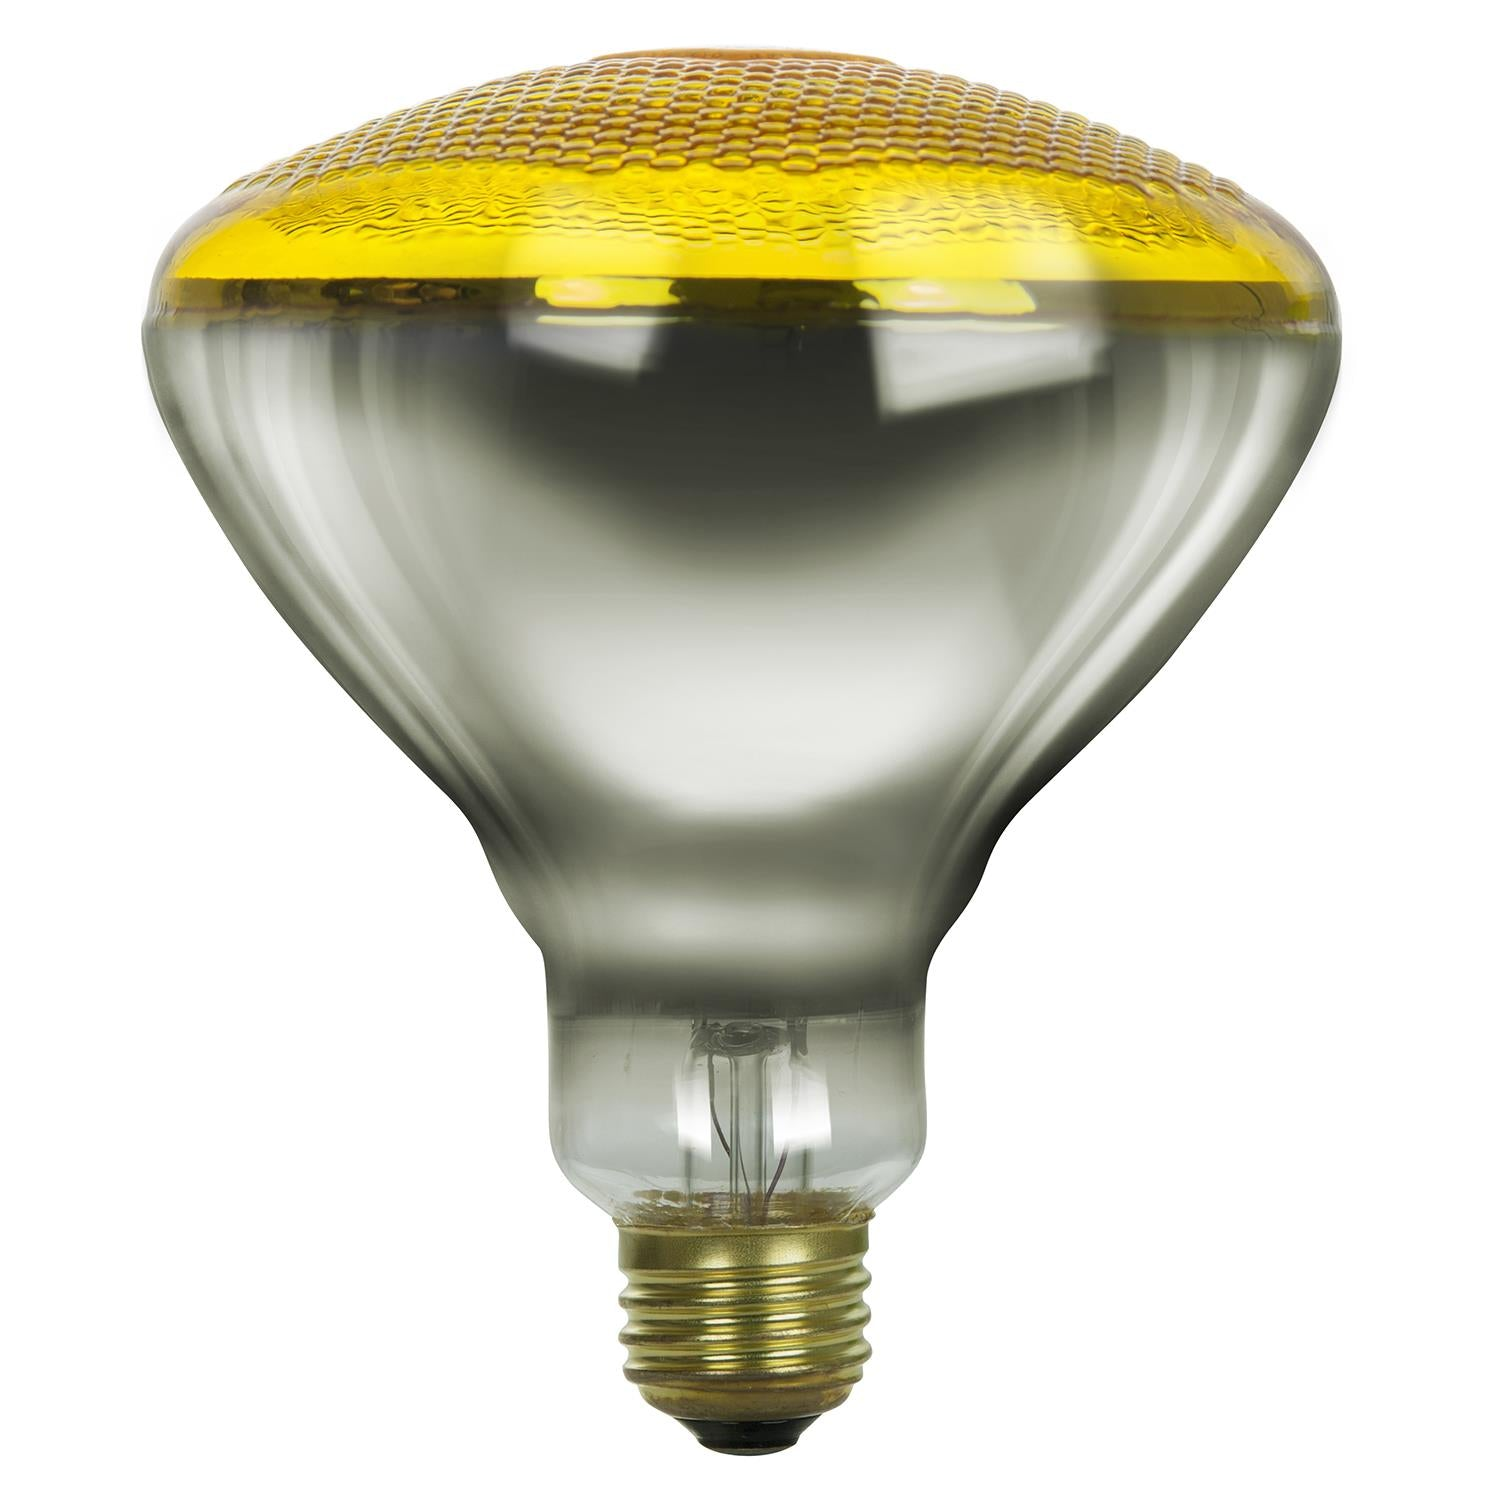 SUNLITE 100w BR38 Flood Reflector Medium Base Prismatic Yellow Incandescent Bulb